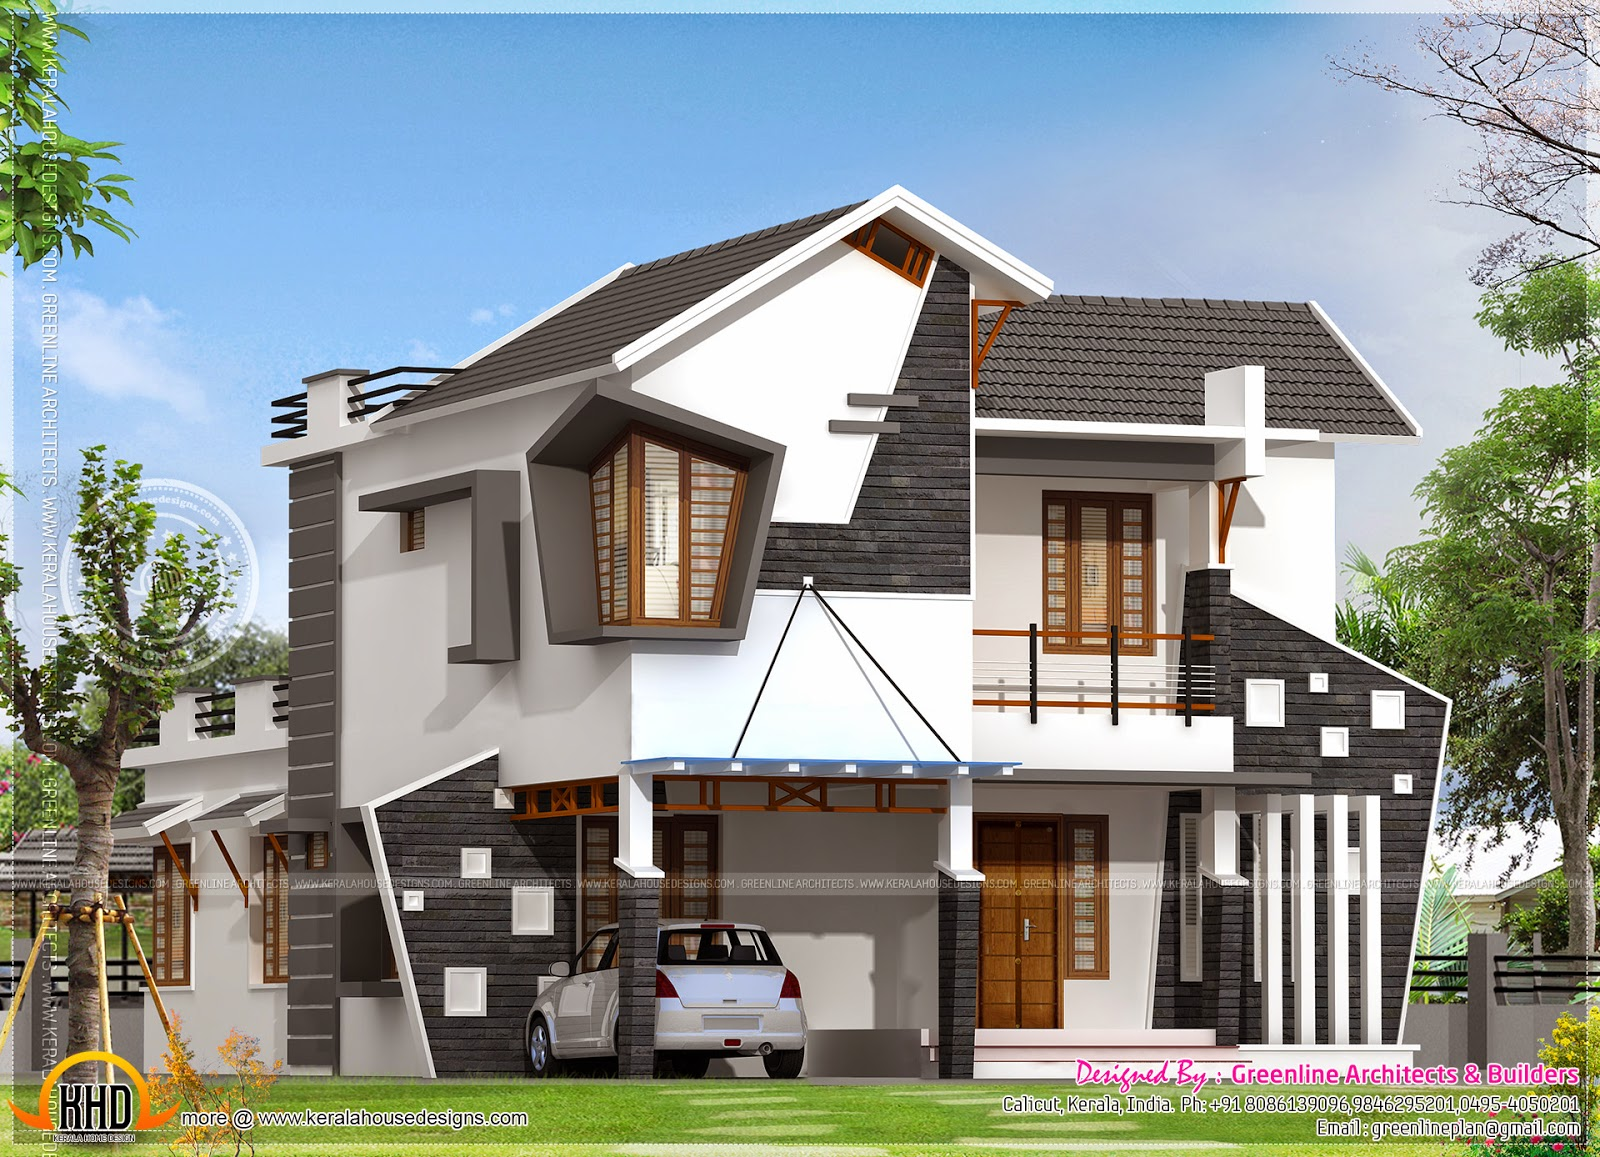 Unique house exterior in 2154 square feet kerala home for Unique home design ideas